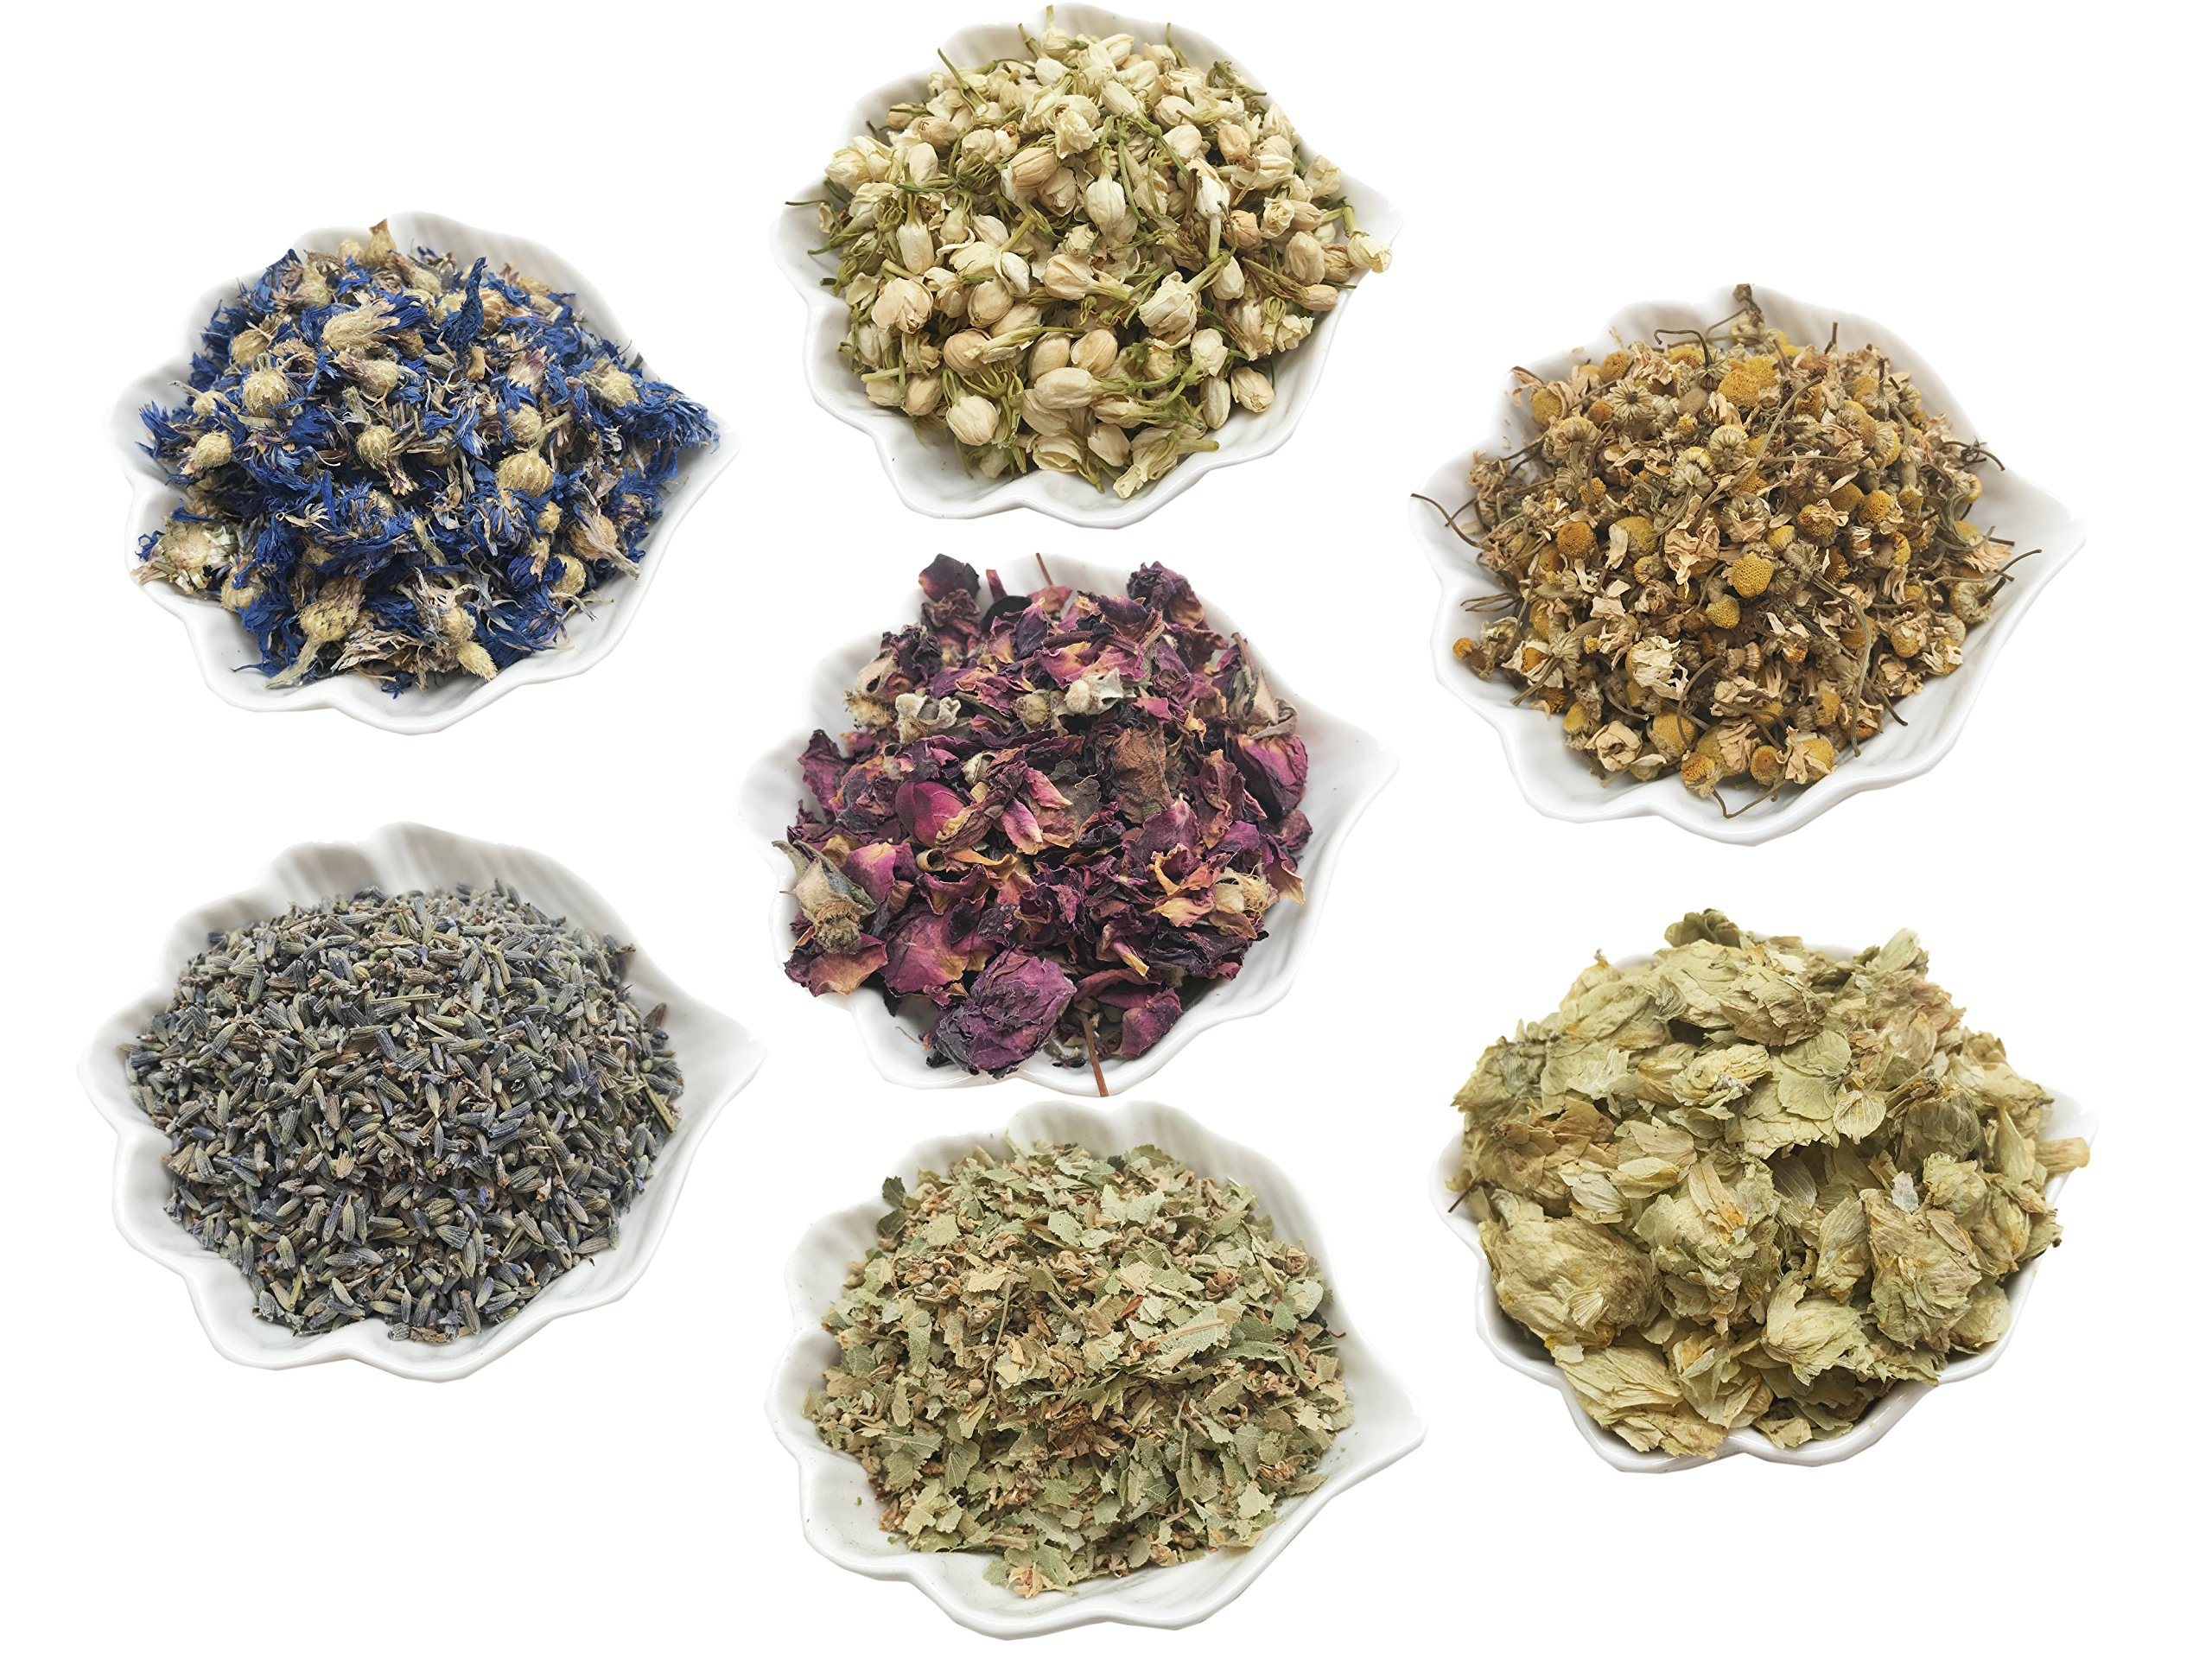 PEPPERLONELY Kosher Certified Botanical Dried Edible Flowers Lavender, Rose Buds & Petals, Jasmine, Chamomile, Cornflowers for Herb Tea, Soap Making, and Bath Bombs by PEPPERLONELY